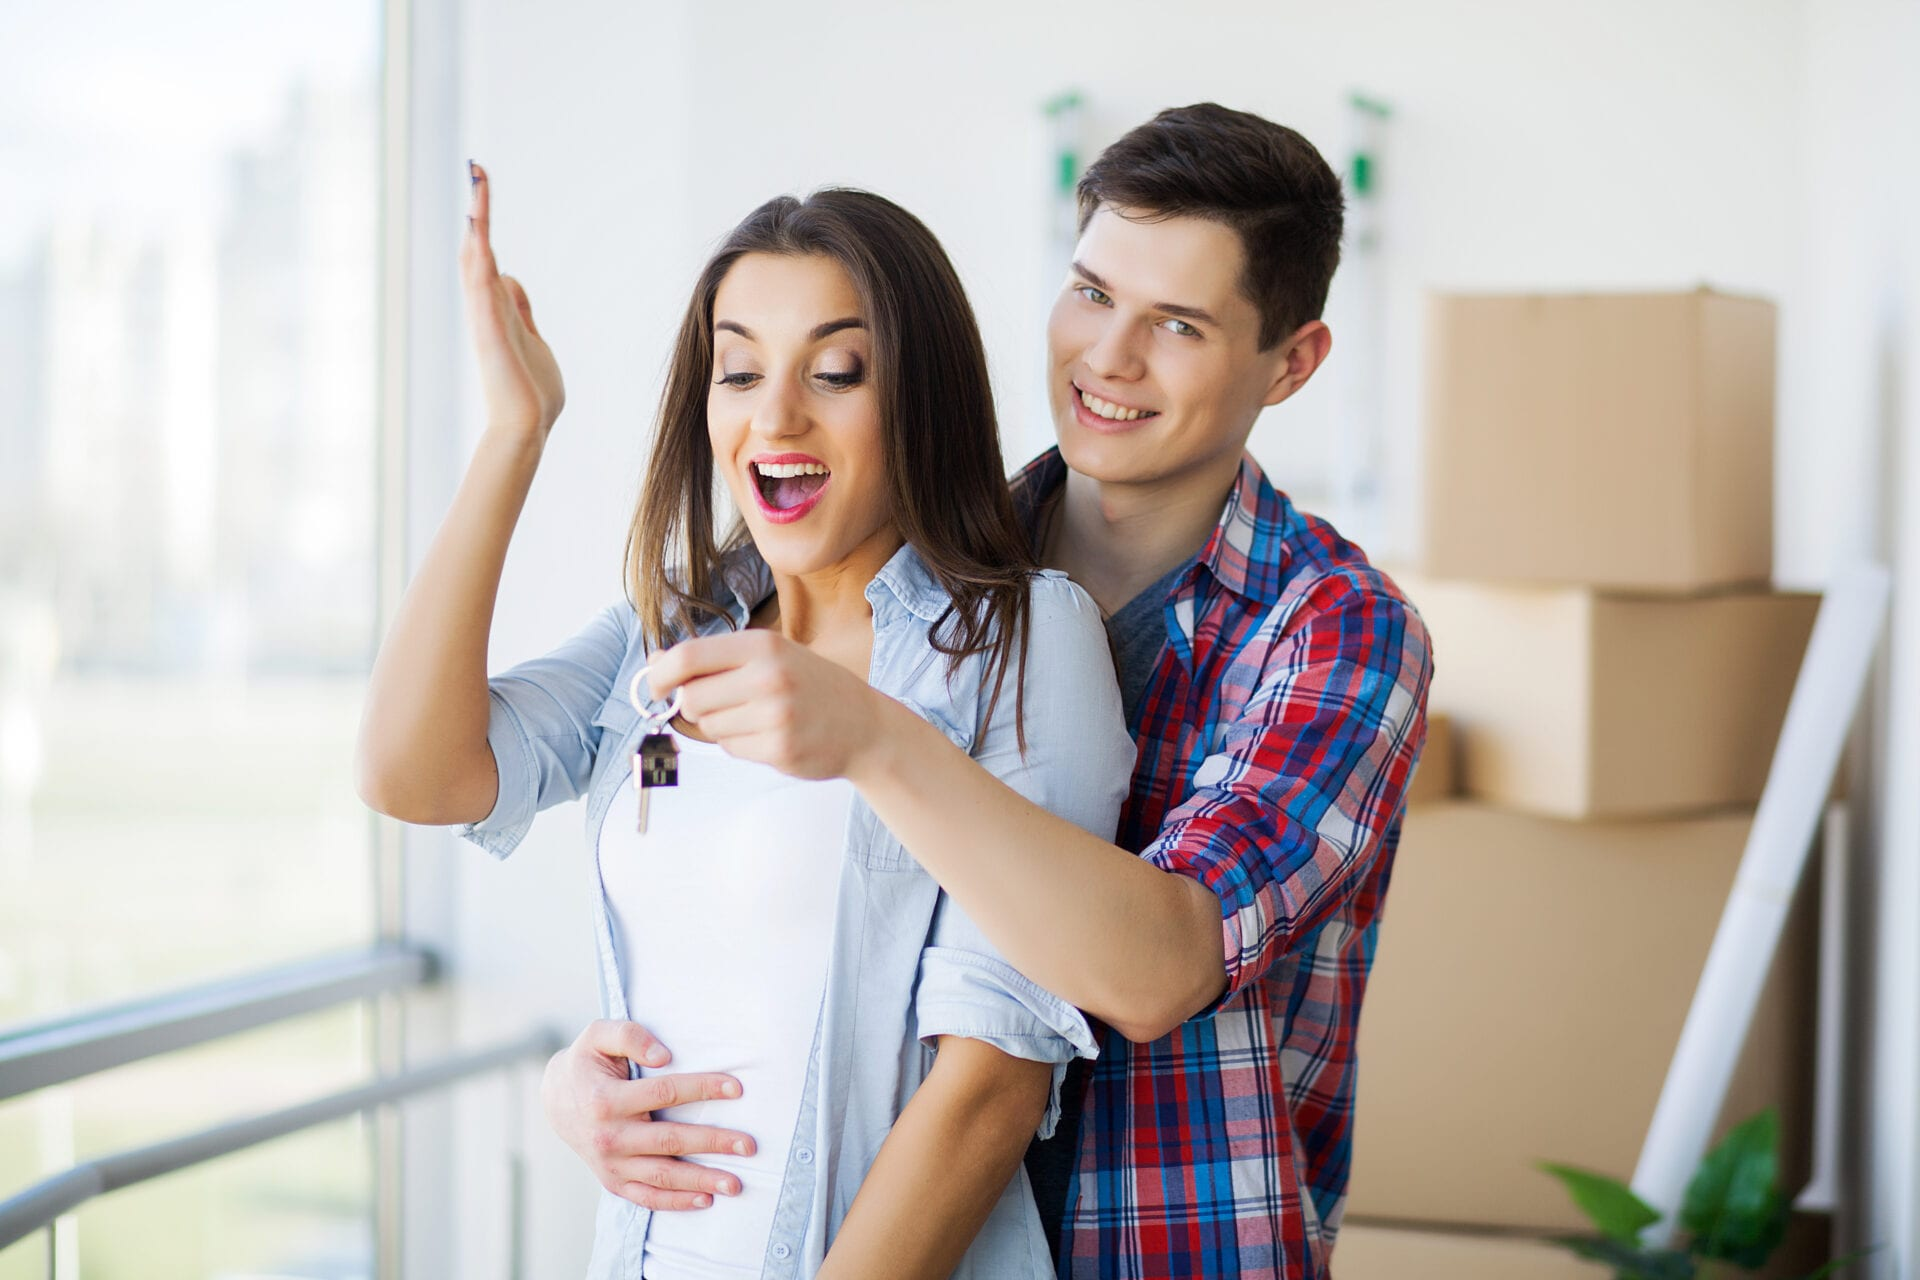 Young Adult Couple Inside Room with Boxes Holding New House Keys Banner.